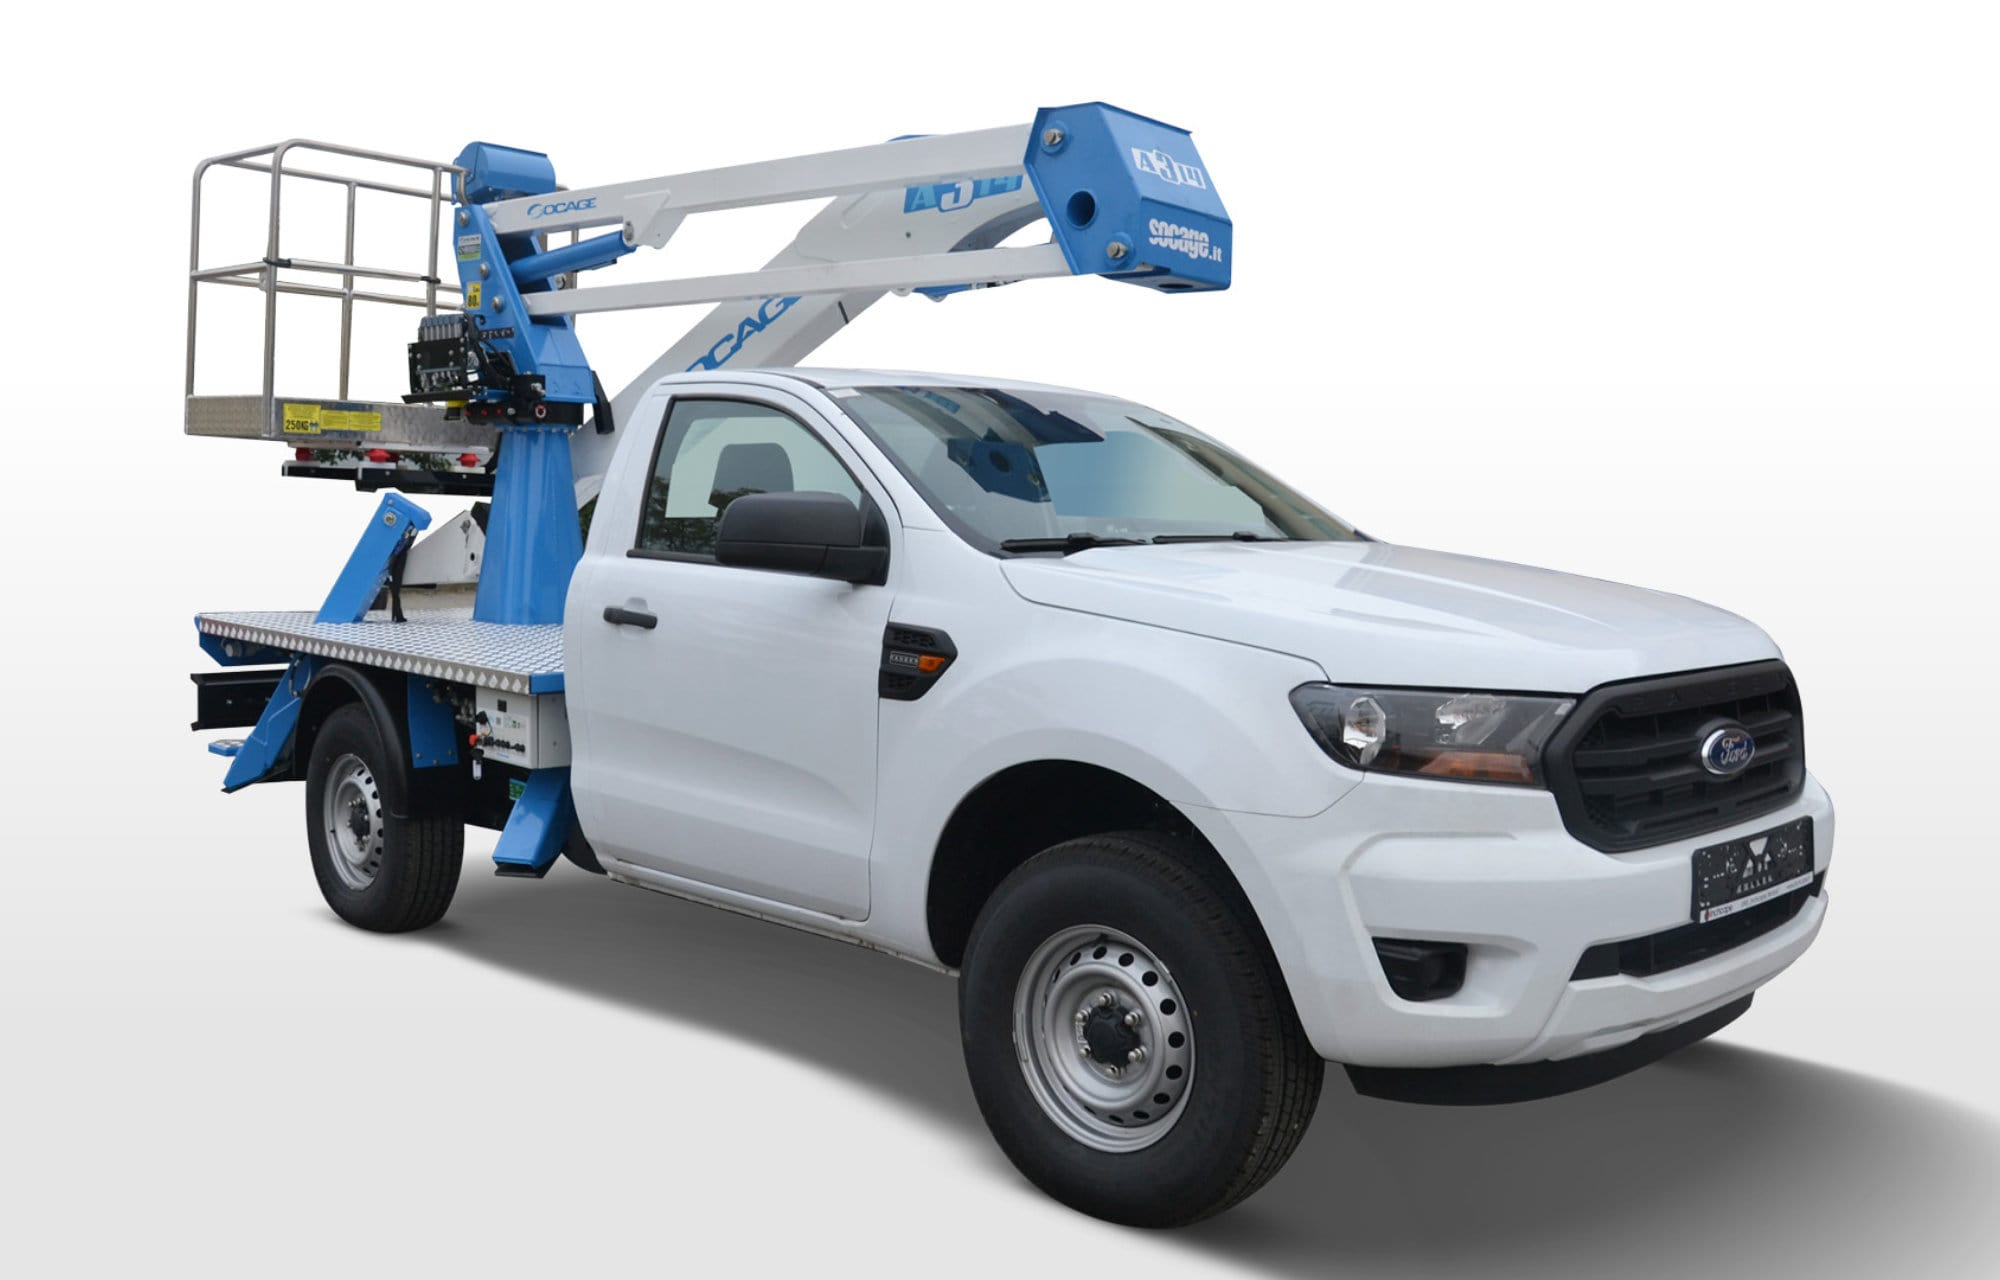 Ford Ranger Chassis-cab model